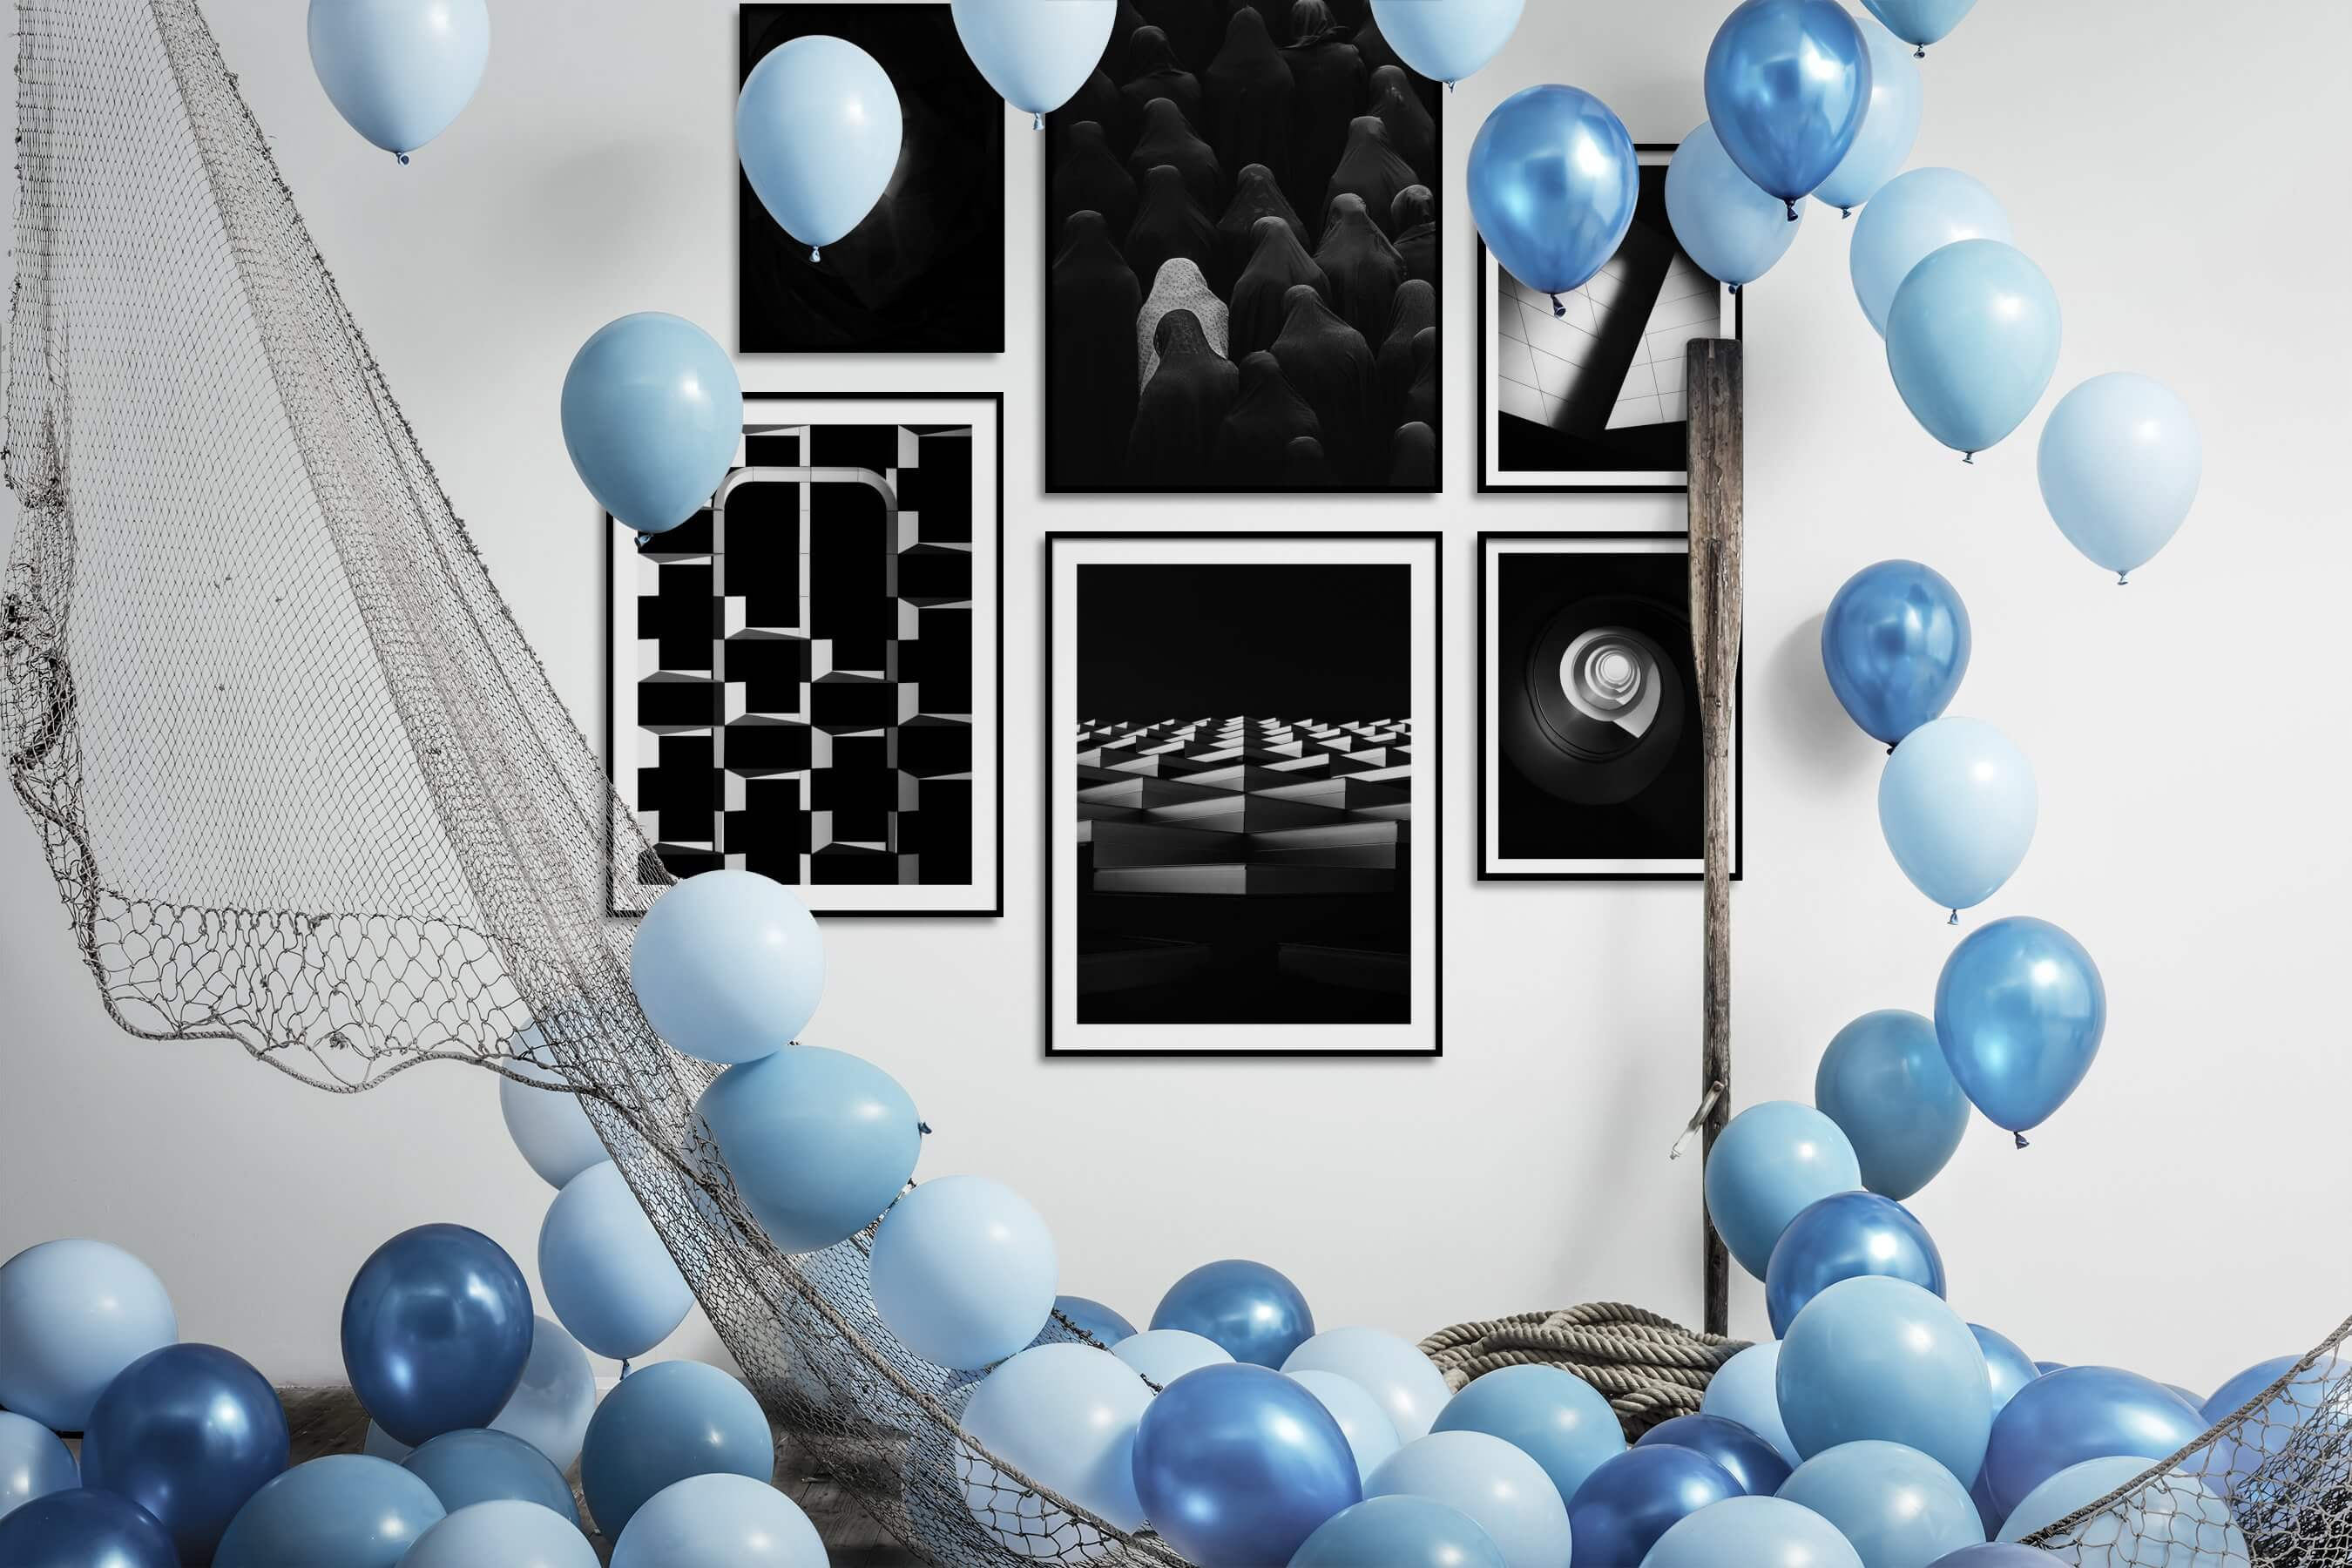 Gallery wall idea with six framed pictures arranged on a wall depicting Fashion & Beauty, Black & White, Dark Tones, For the Minimalist, For the Moderate, and For the Maximalist